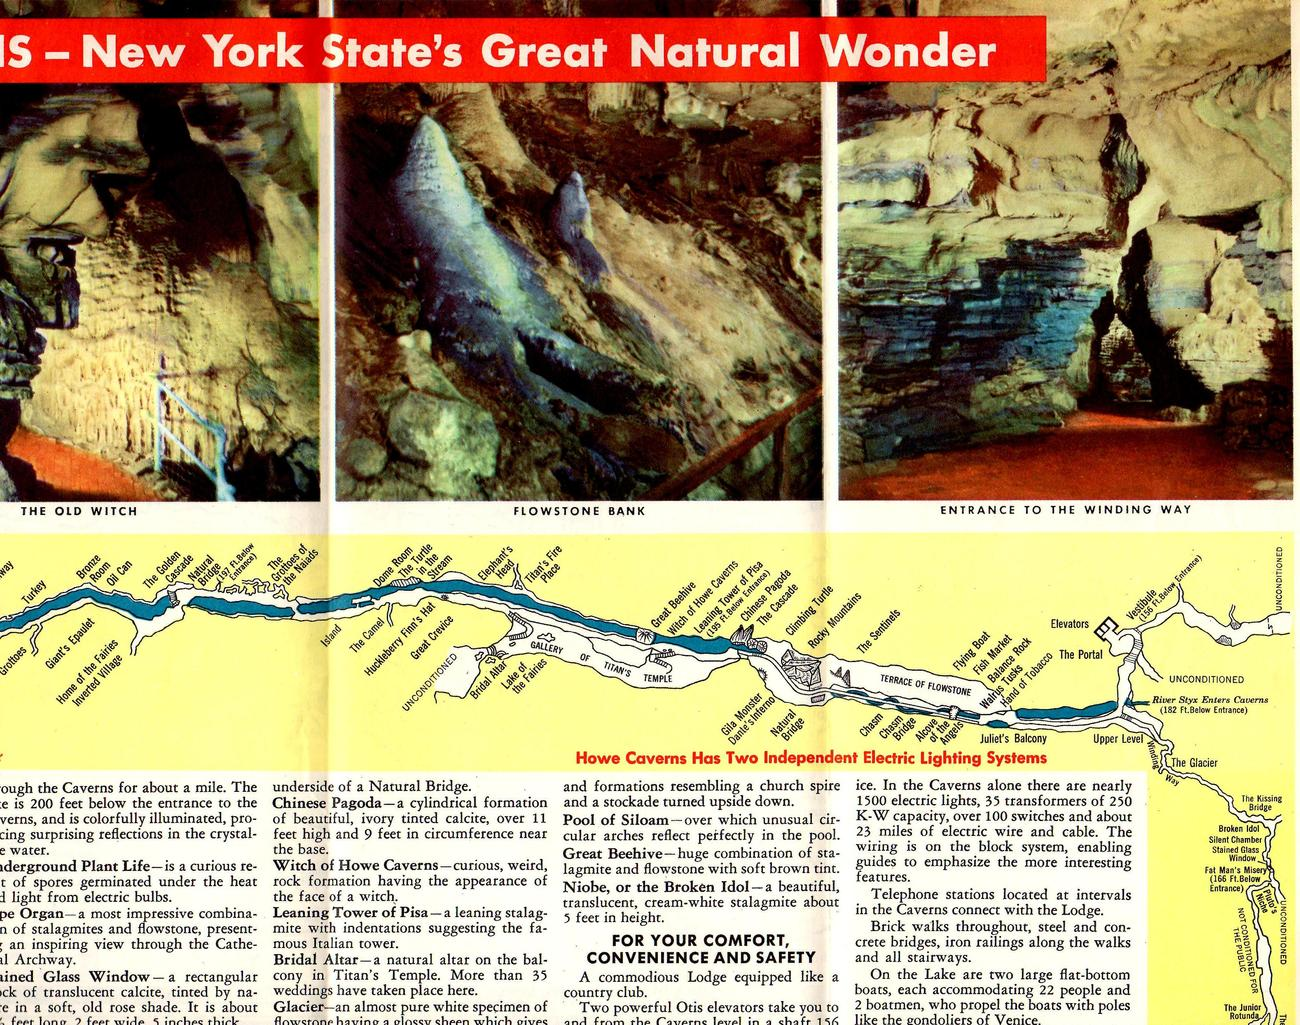 Howe Caverns -(1940) Interstate Road Guide- New York State